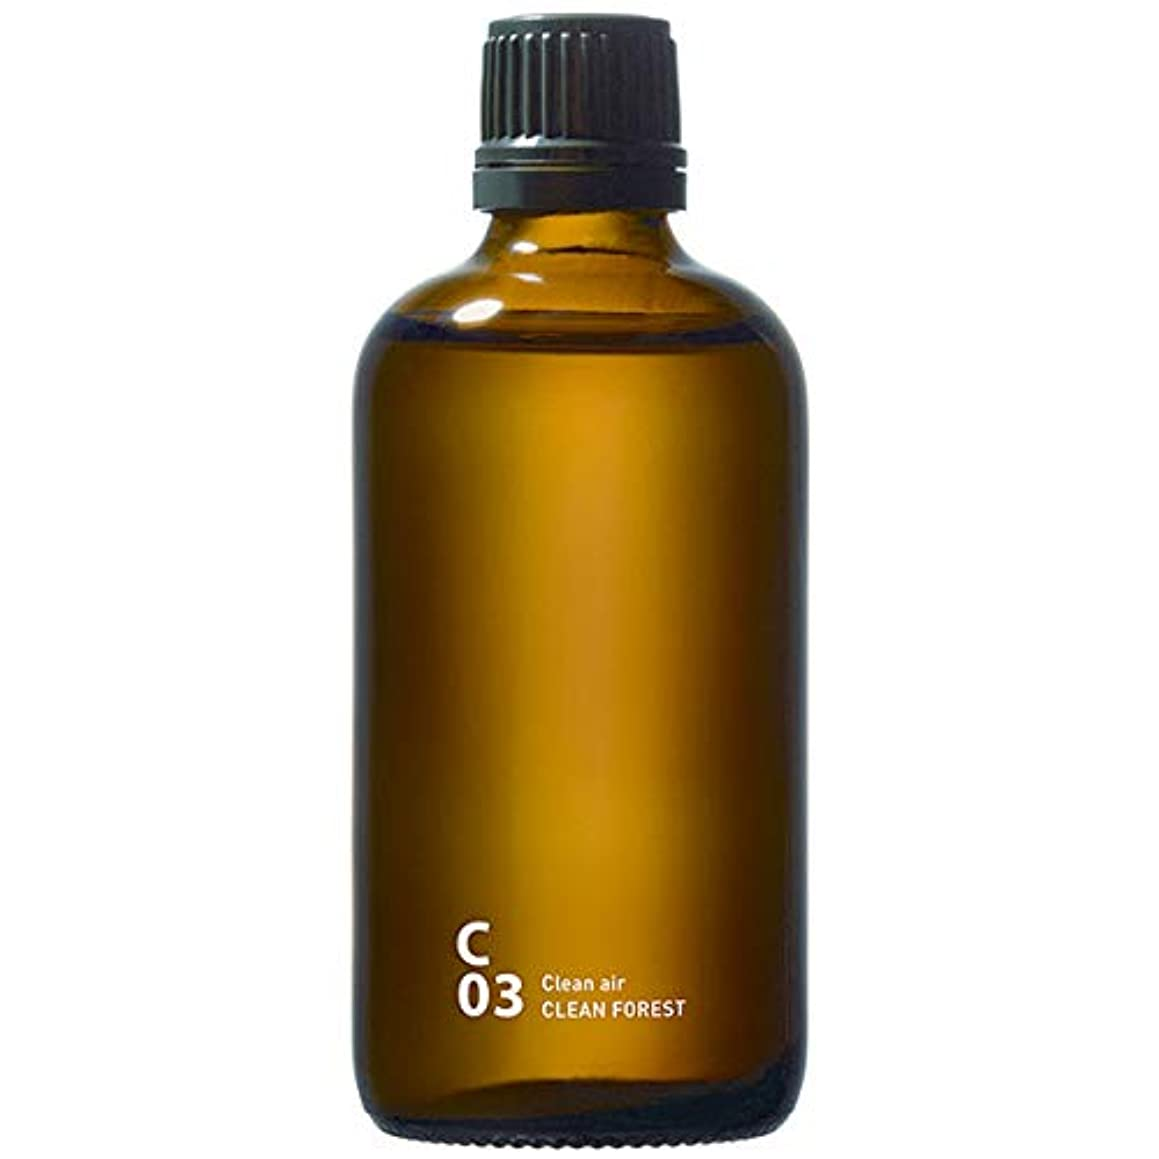 贈り物テキスト嵐C03 CLEAN FOREST piezo aroma oil 100ml